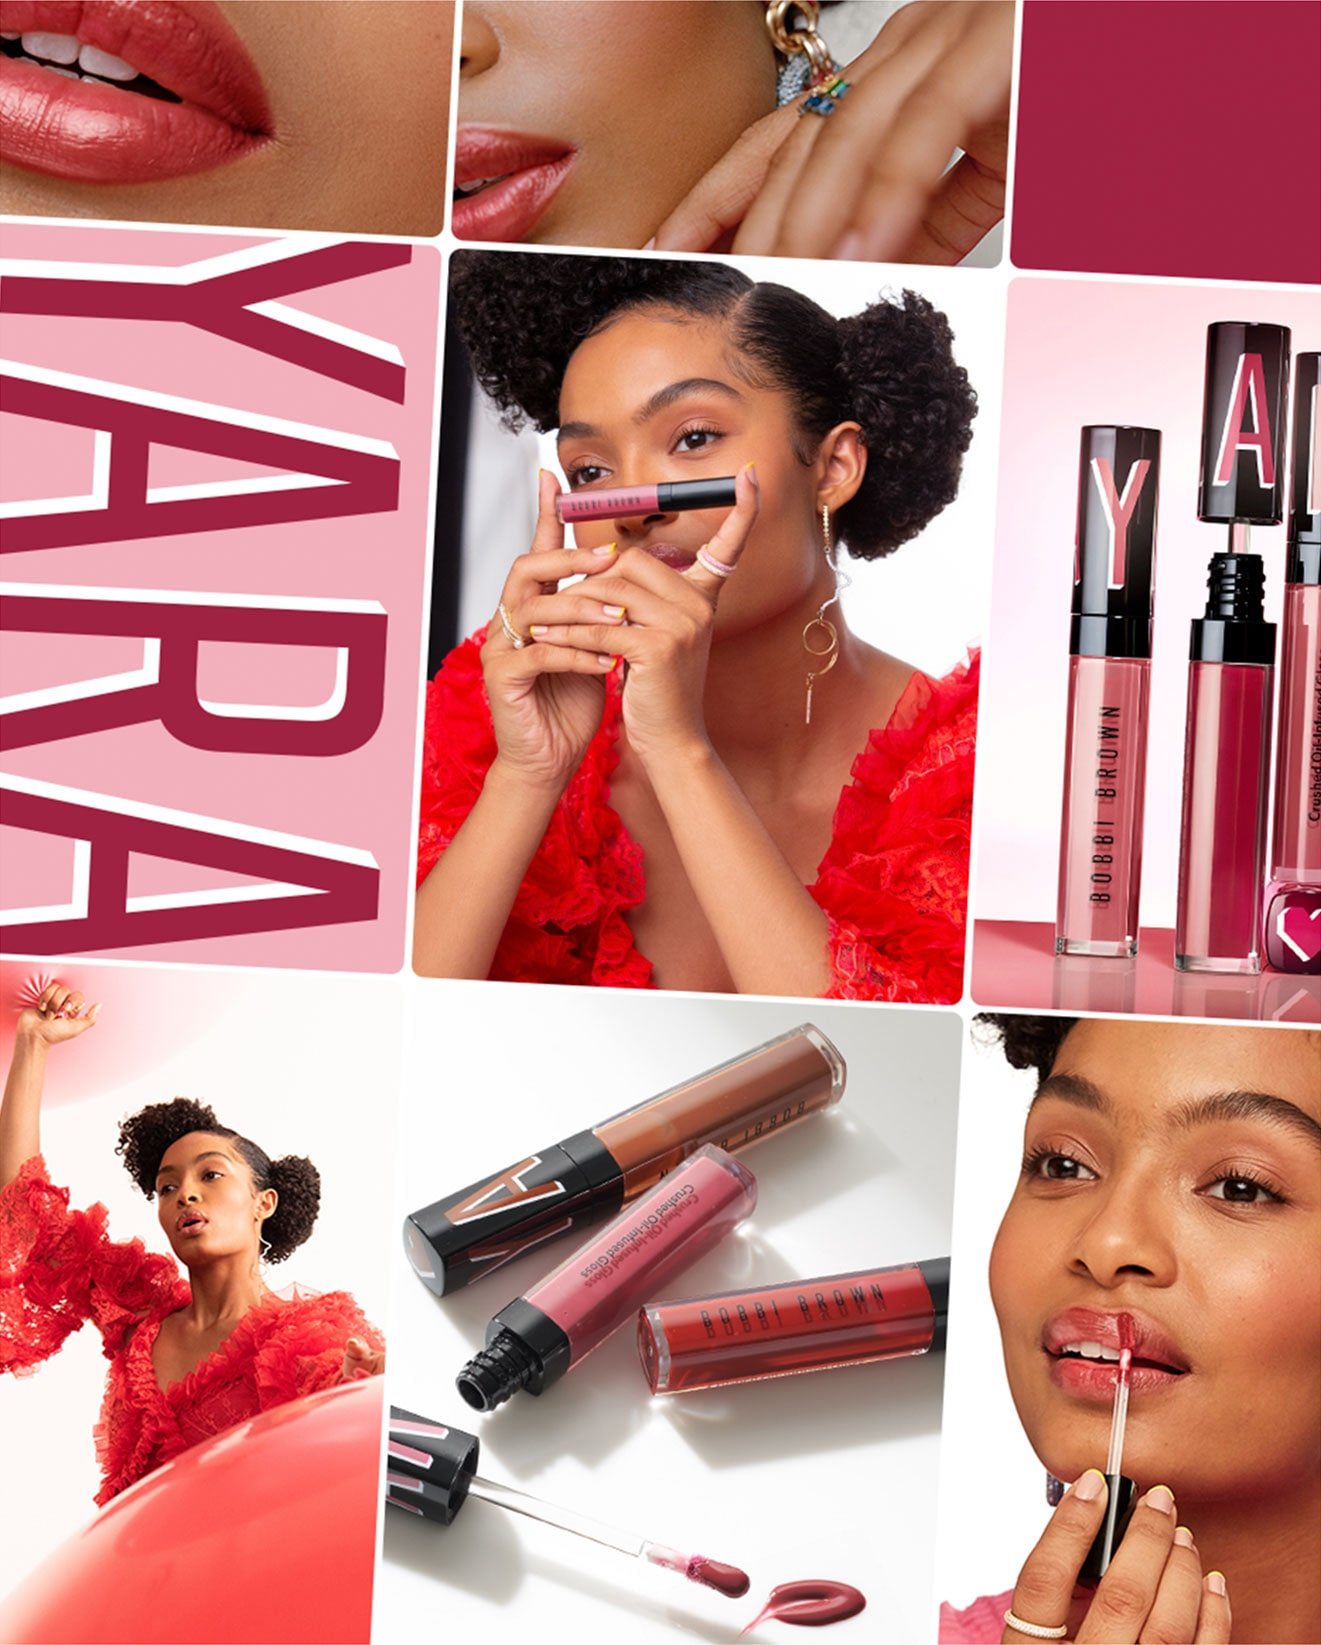 Bobbi Brown Crushed Oil Infused Gloss Yara Shahidi- info review swatch dove acquistare recensione prezzo